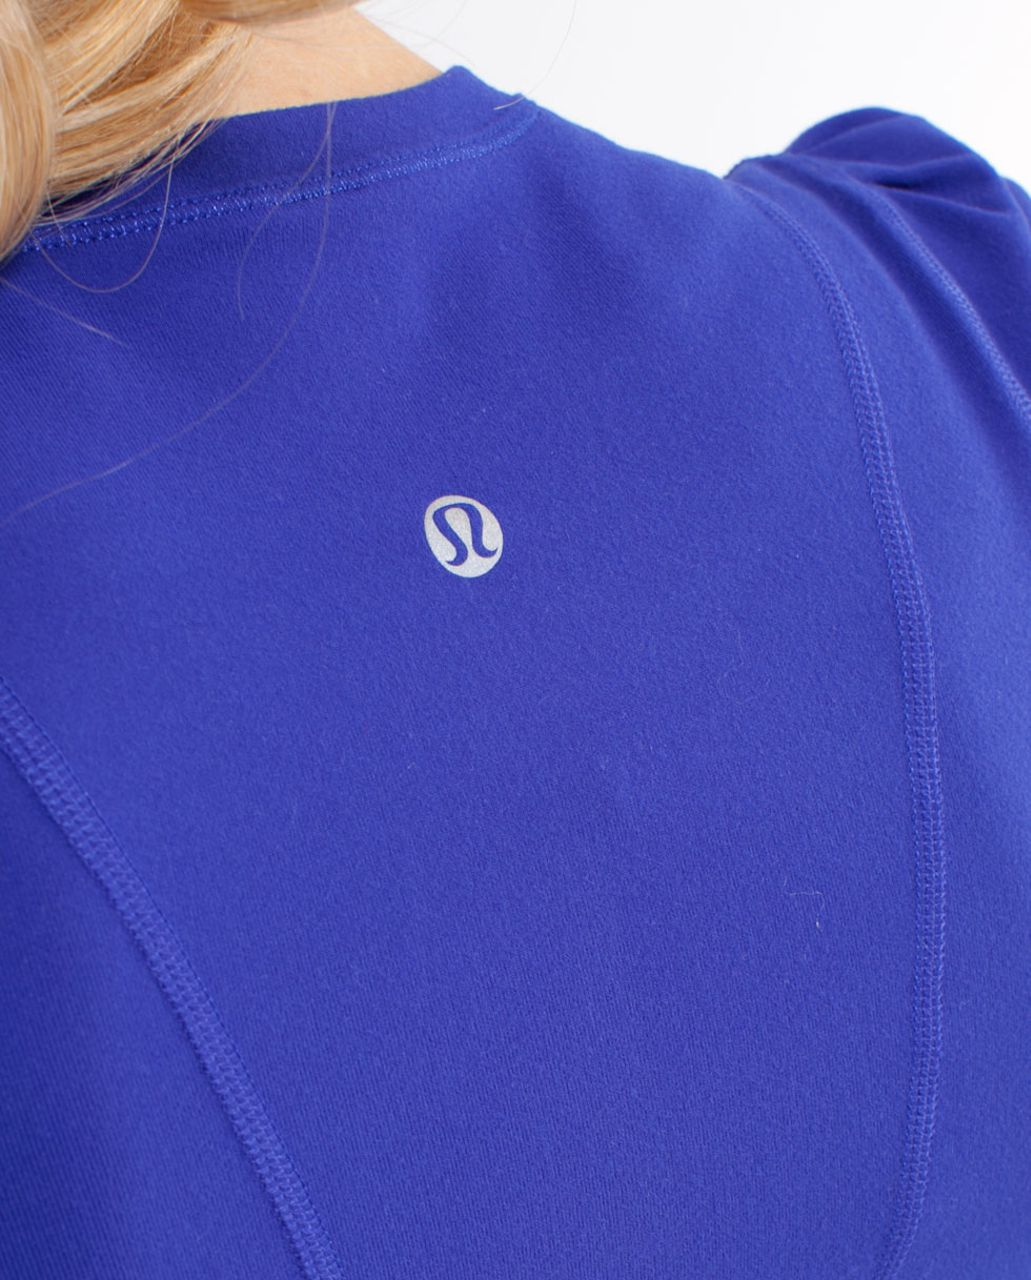 Lululemon Run:  Back On Track Long Sleeve Tech - Pigment Blue